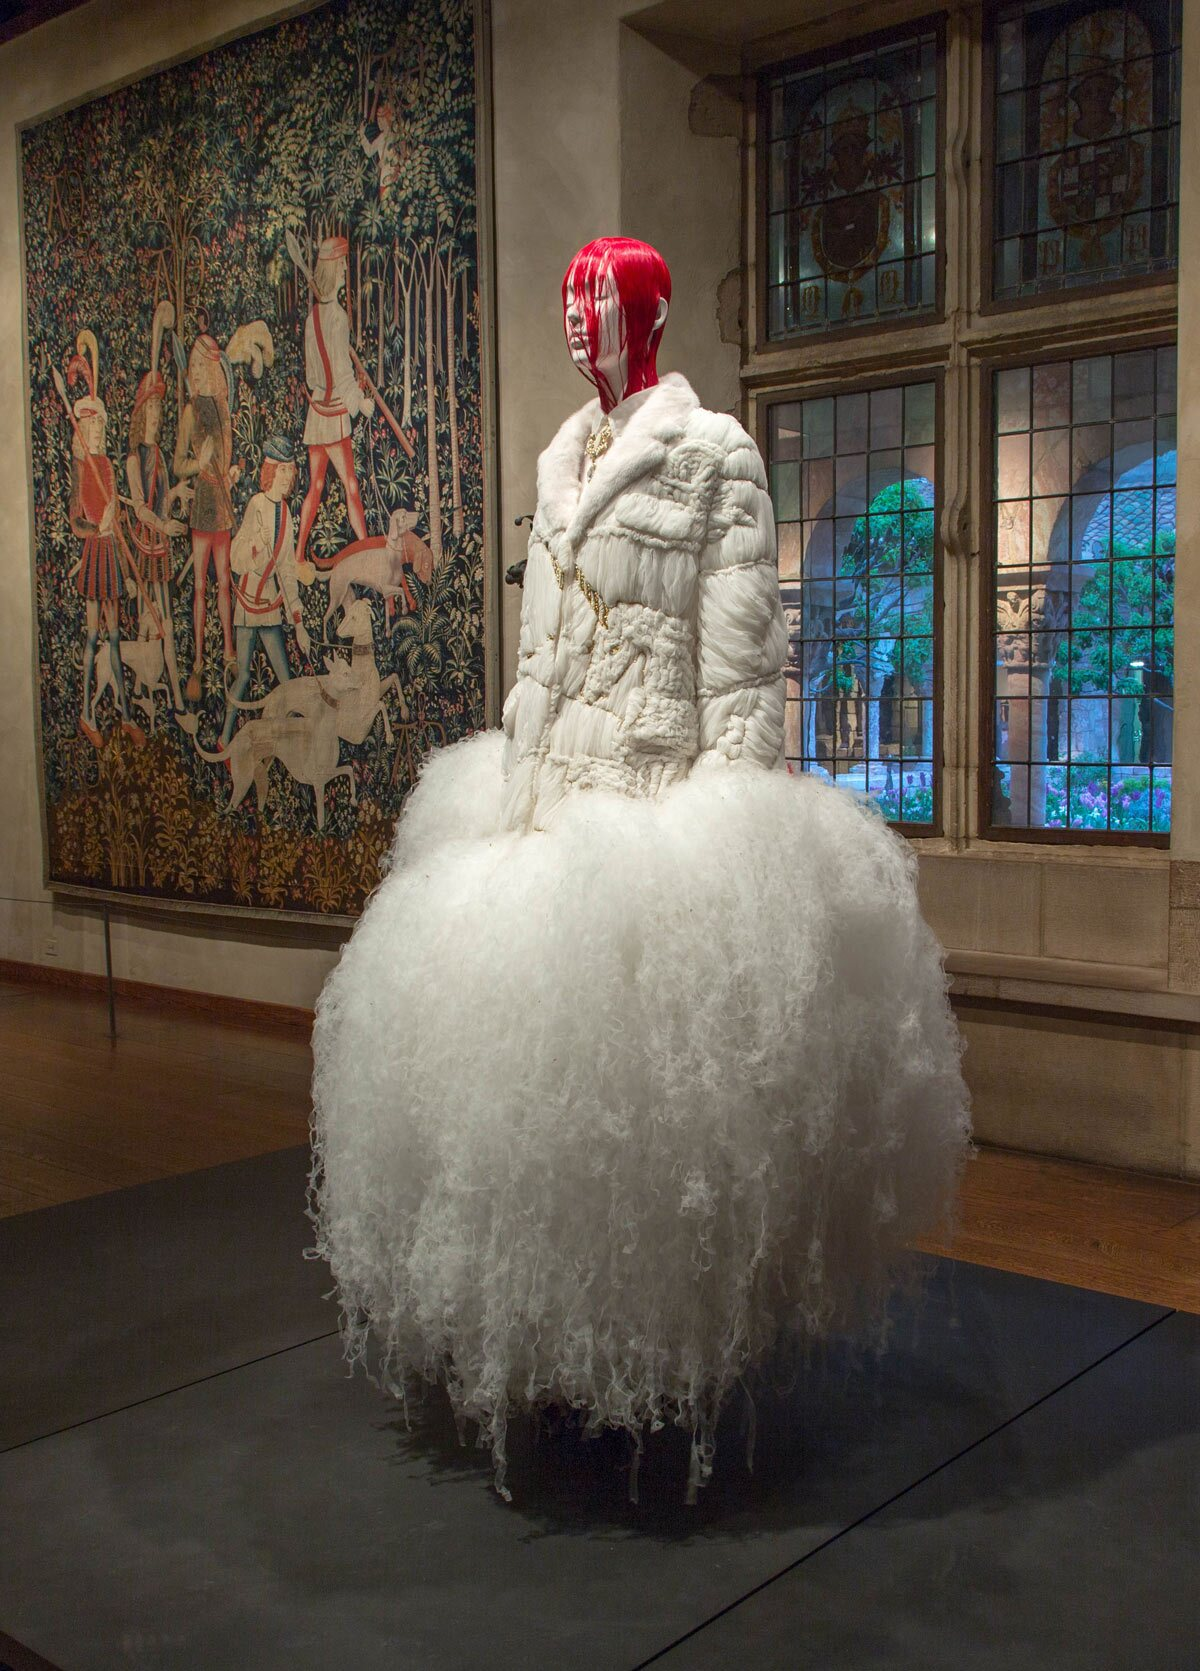 A wedding dress designed by Thom Browne this year, with wig by Shay Ashual.